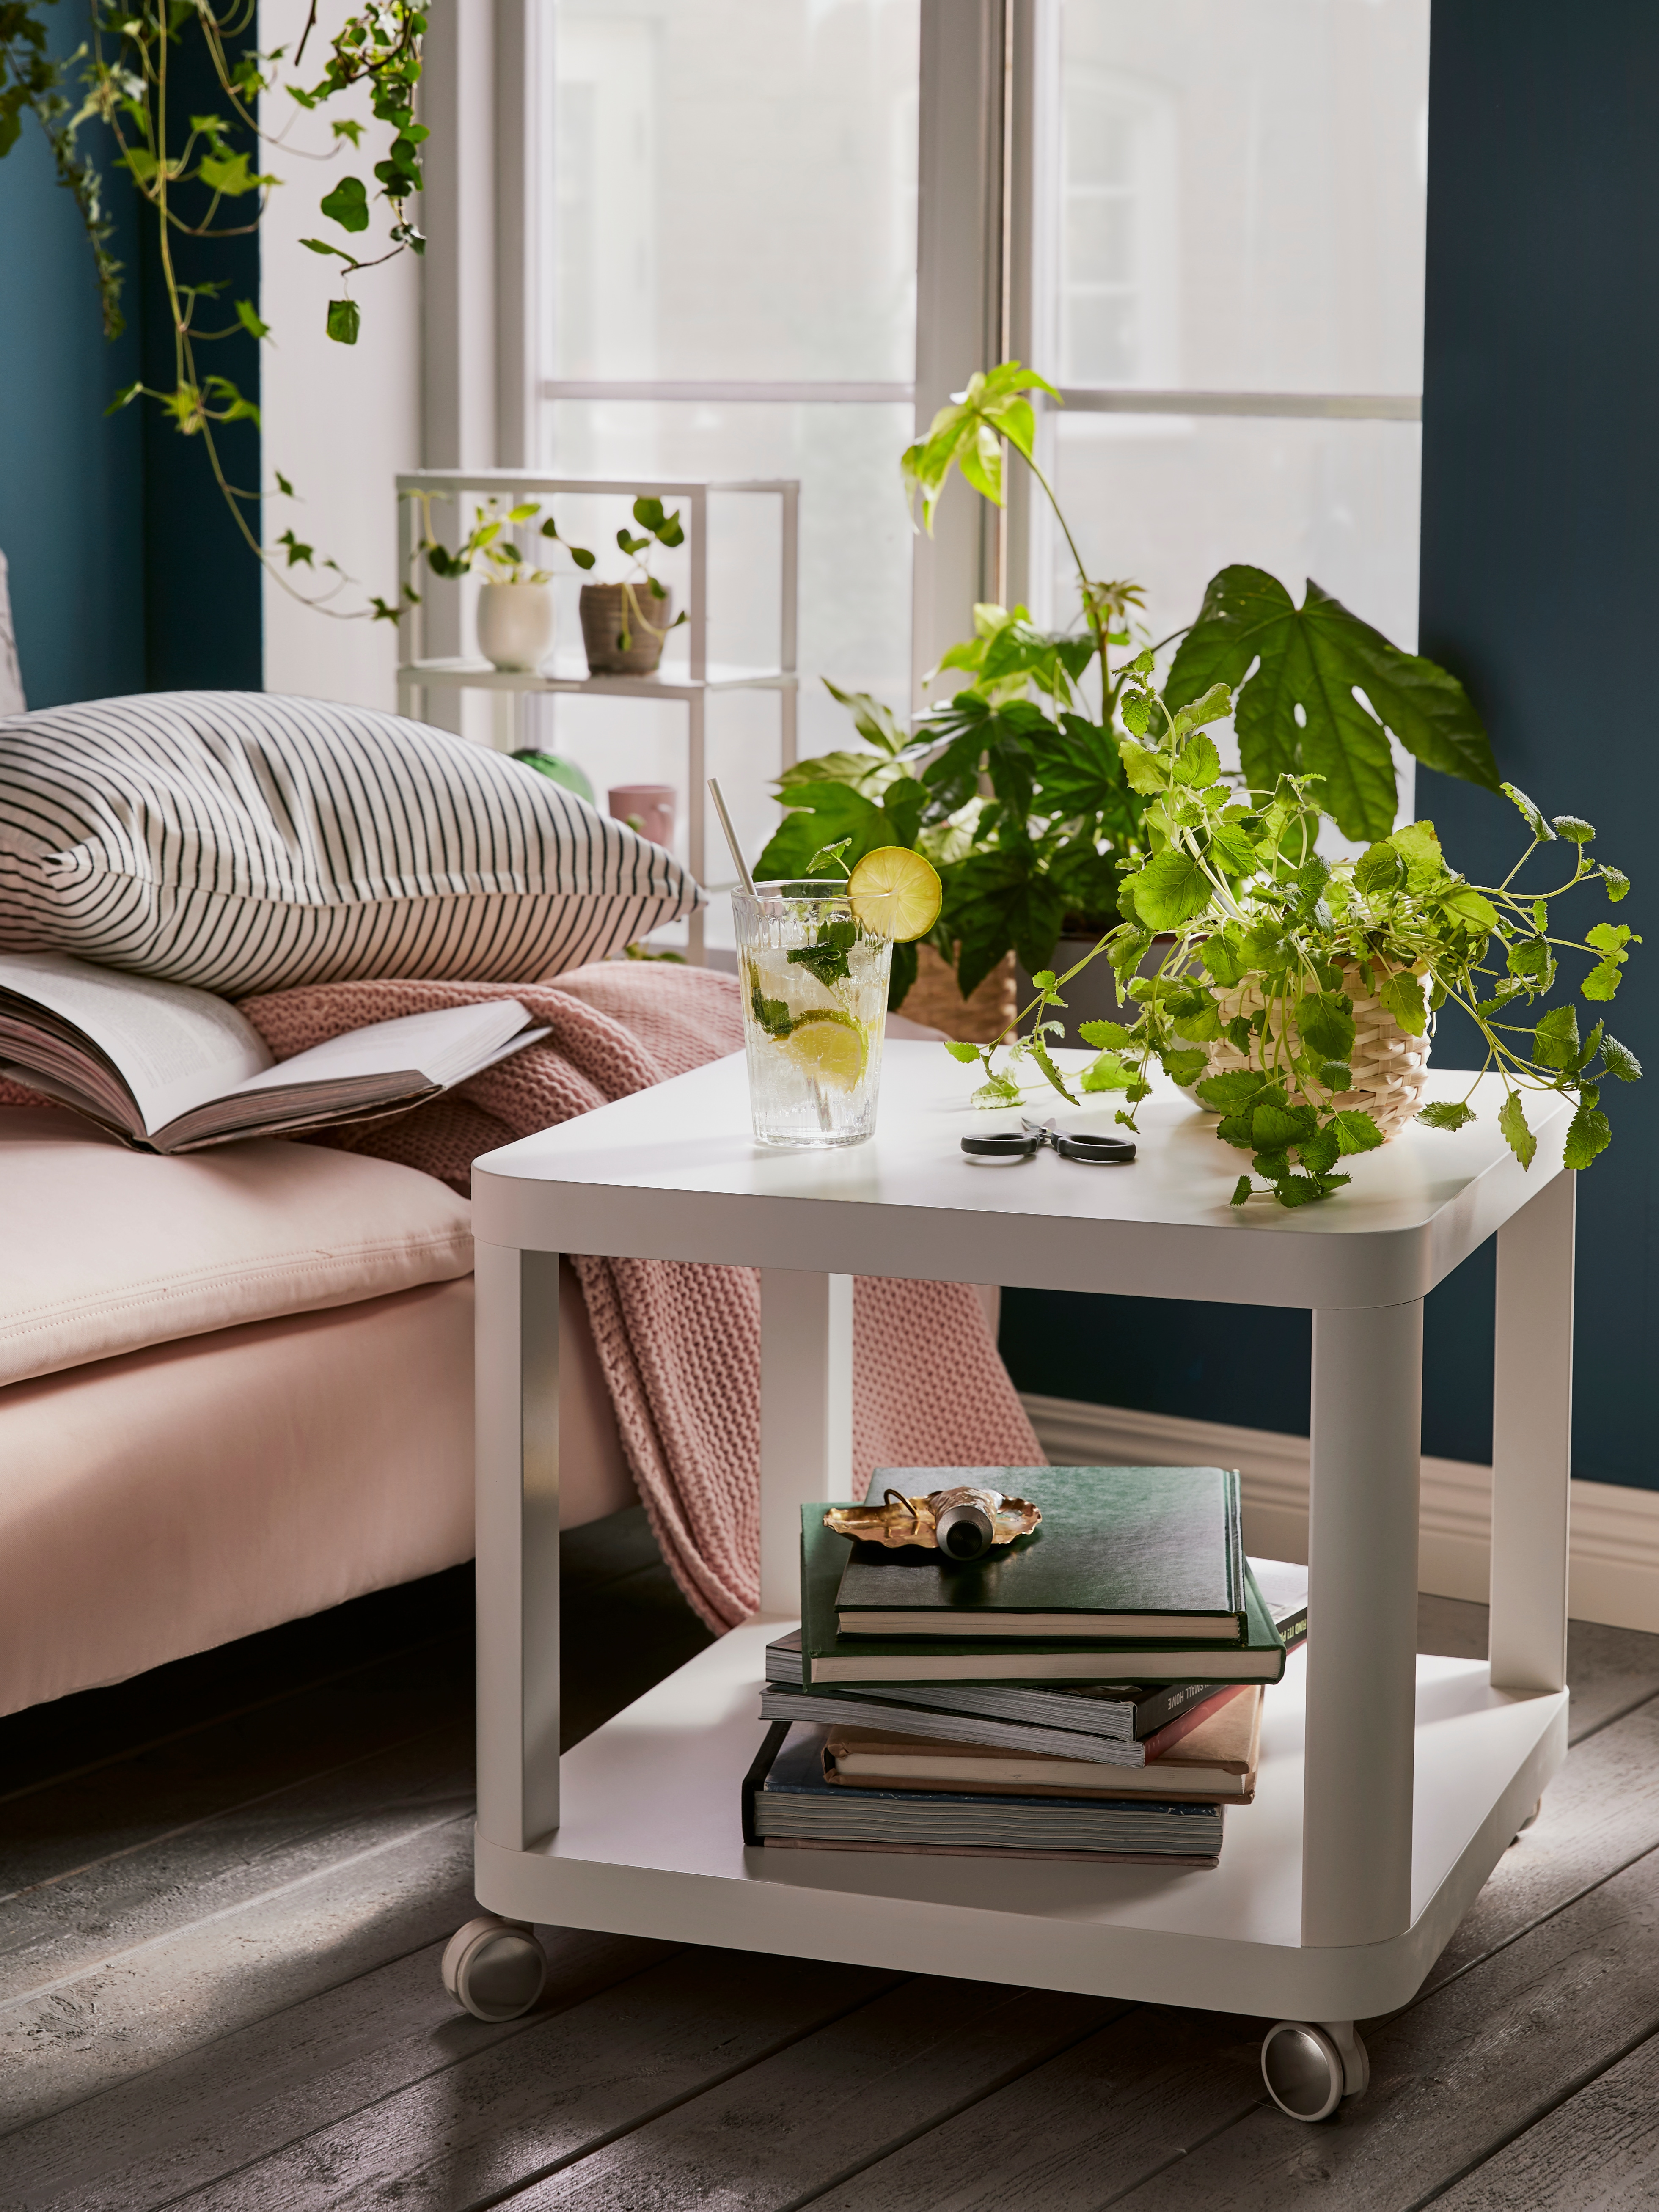 White TINGBY side table with castors in front of a pale pink SÖDERHAMN chaise longue. The table holds books and plants.